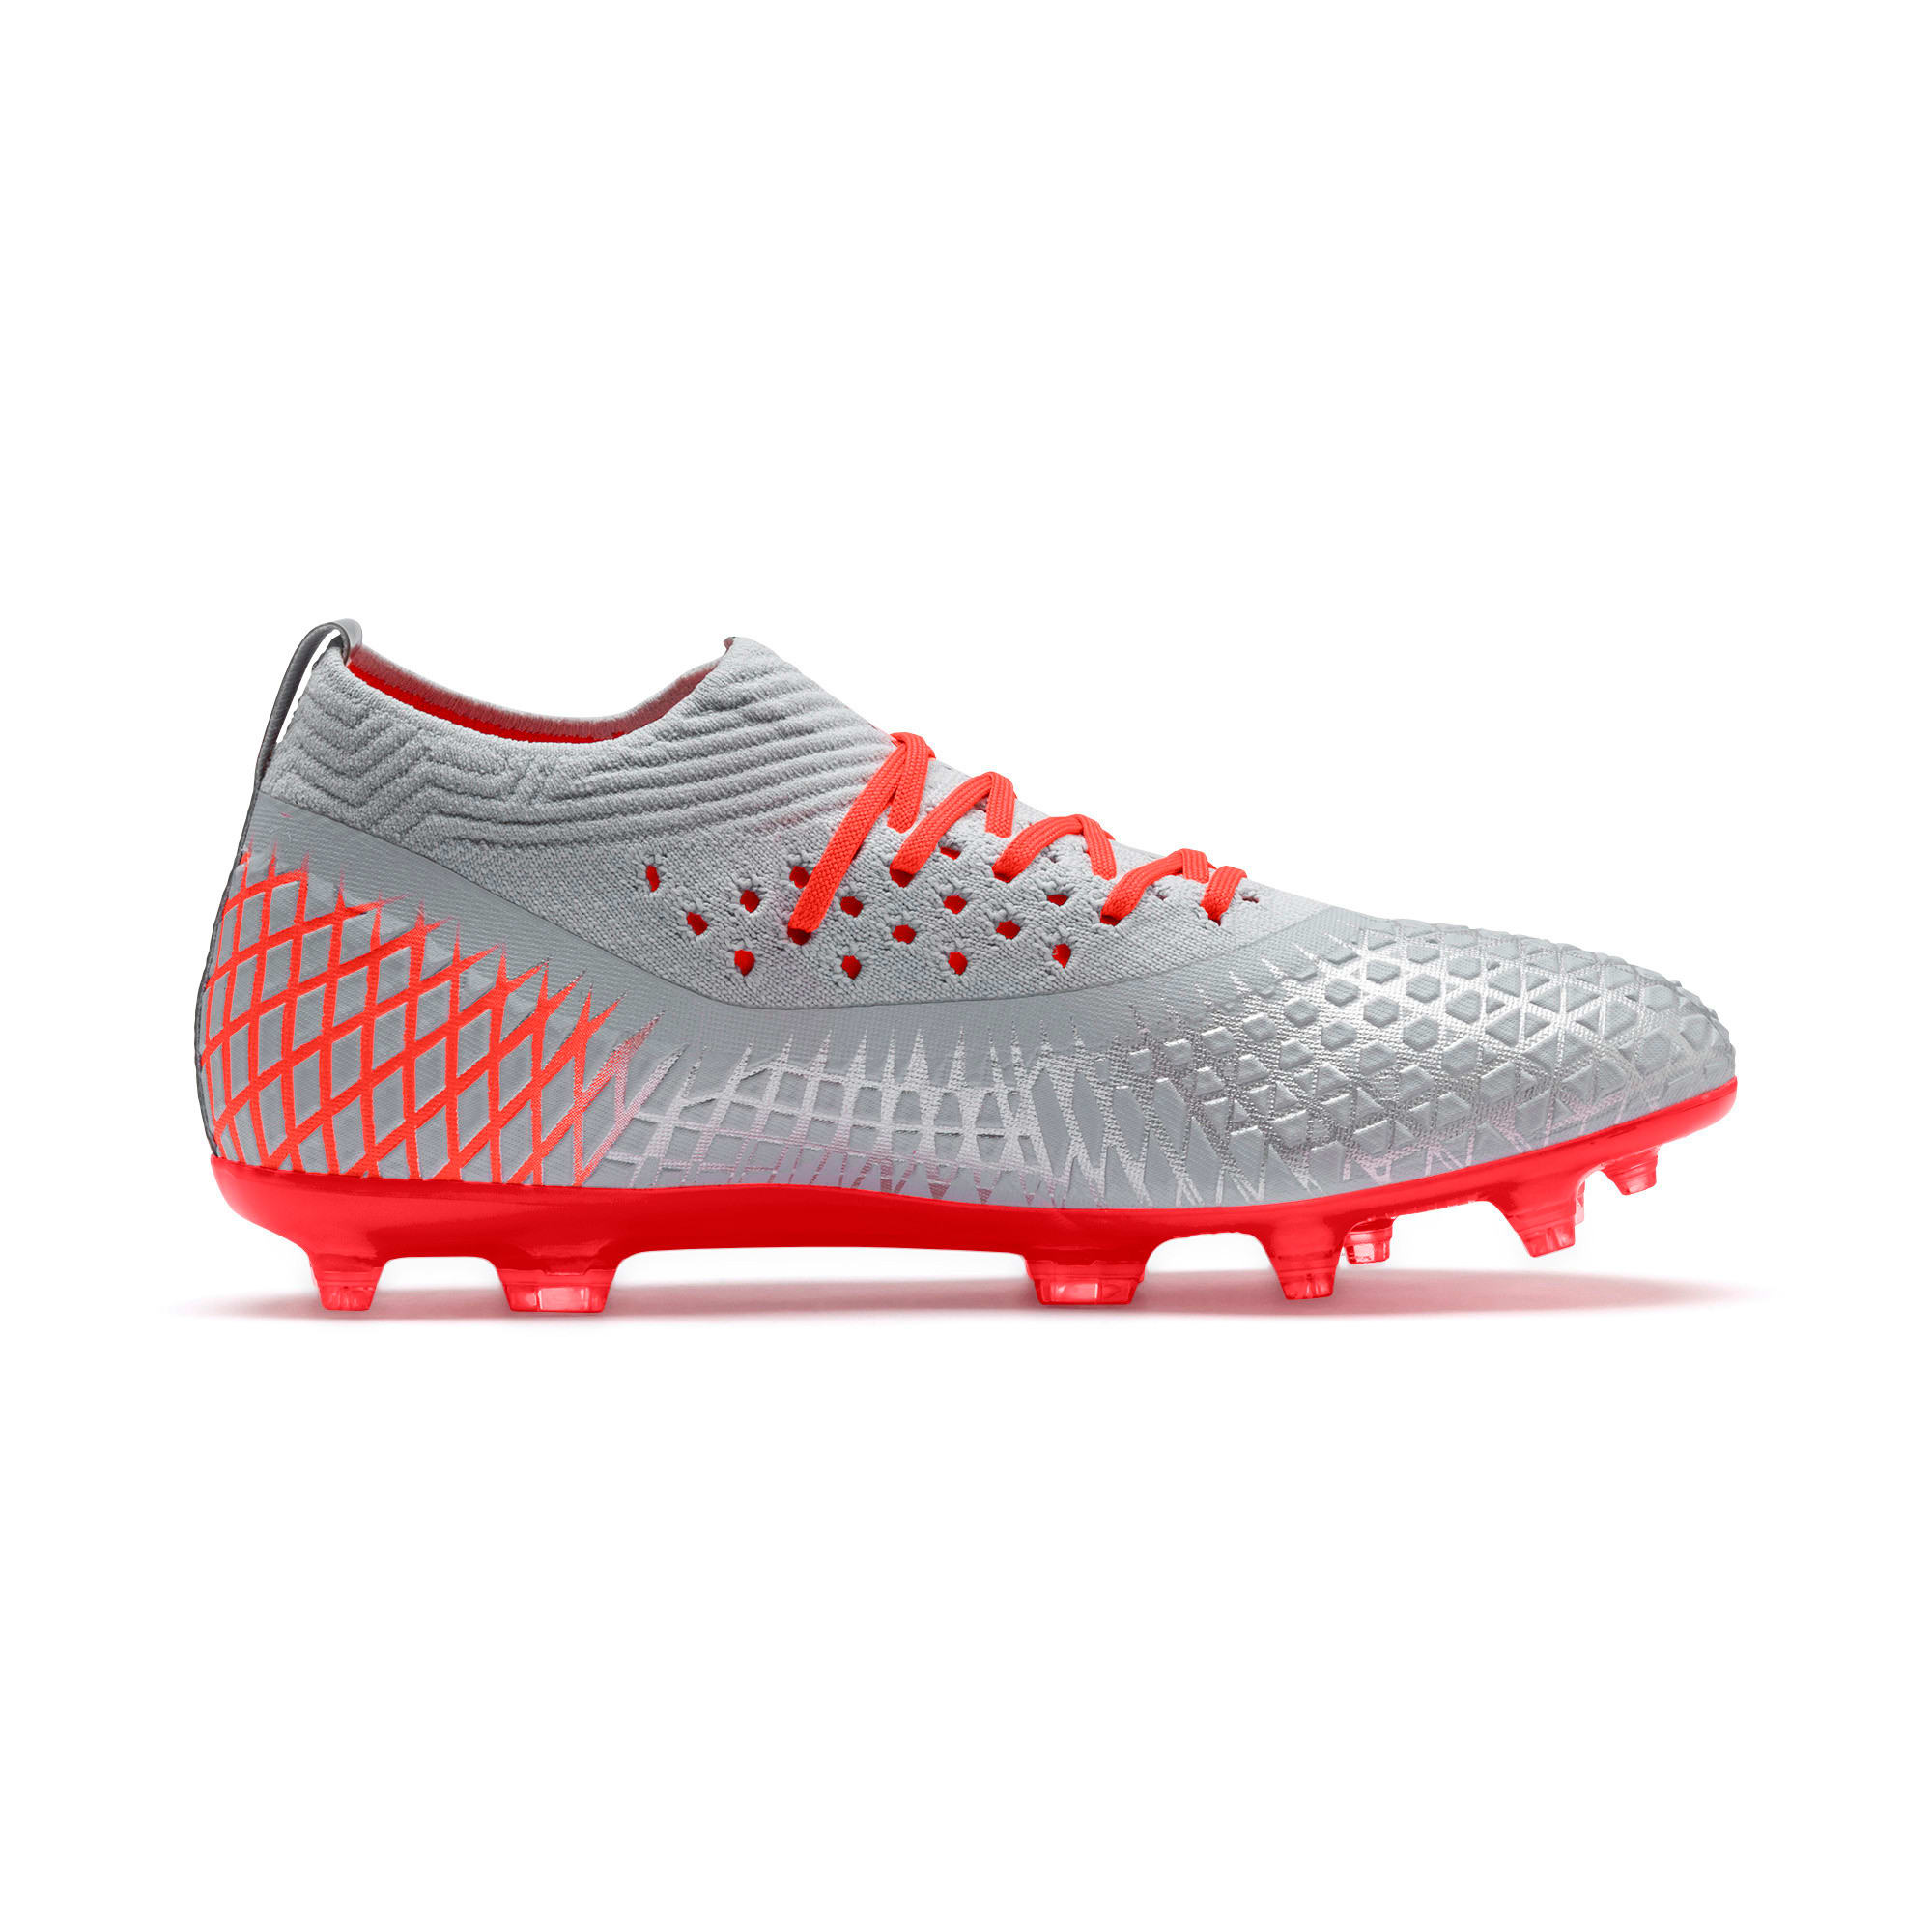 Thumbnail 6 of FUTURE 4.2 NETFIT FG/AG Men's Football Boots, Glacial Blue-Nrgy Red, medium